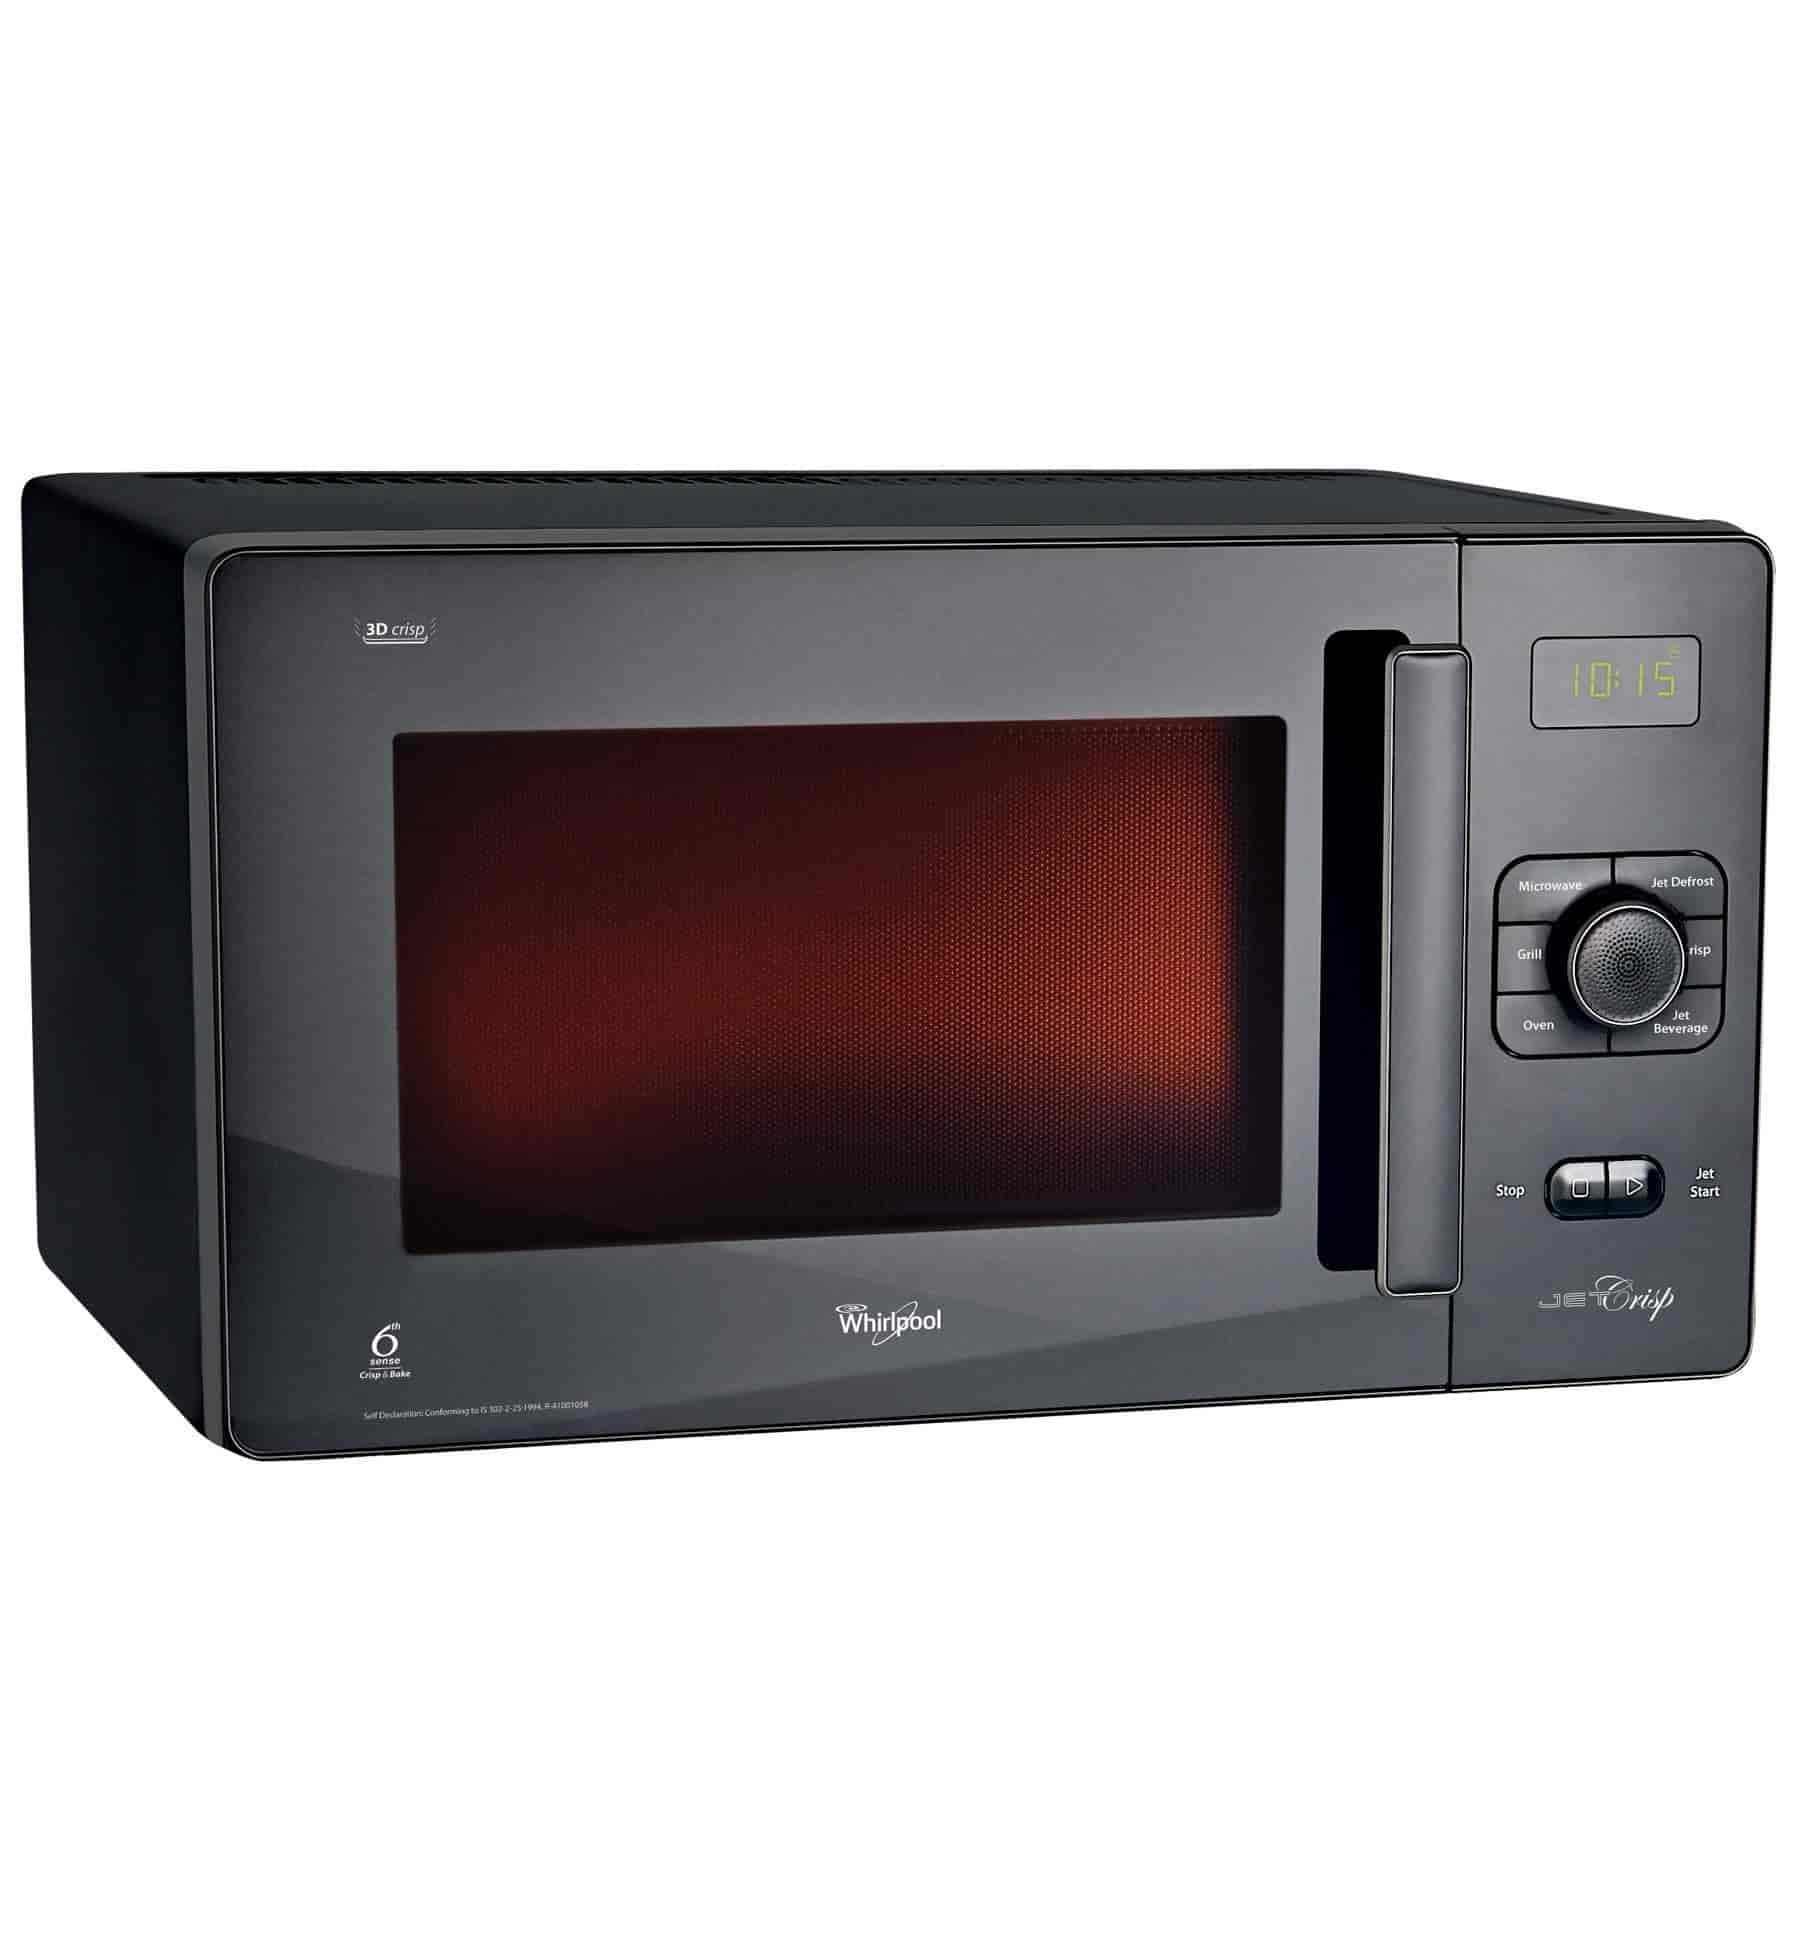 Whirlpool Jet Crisp Convection 25 Litres Microwave Oven Black